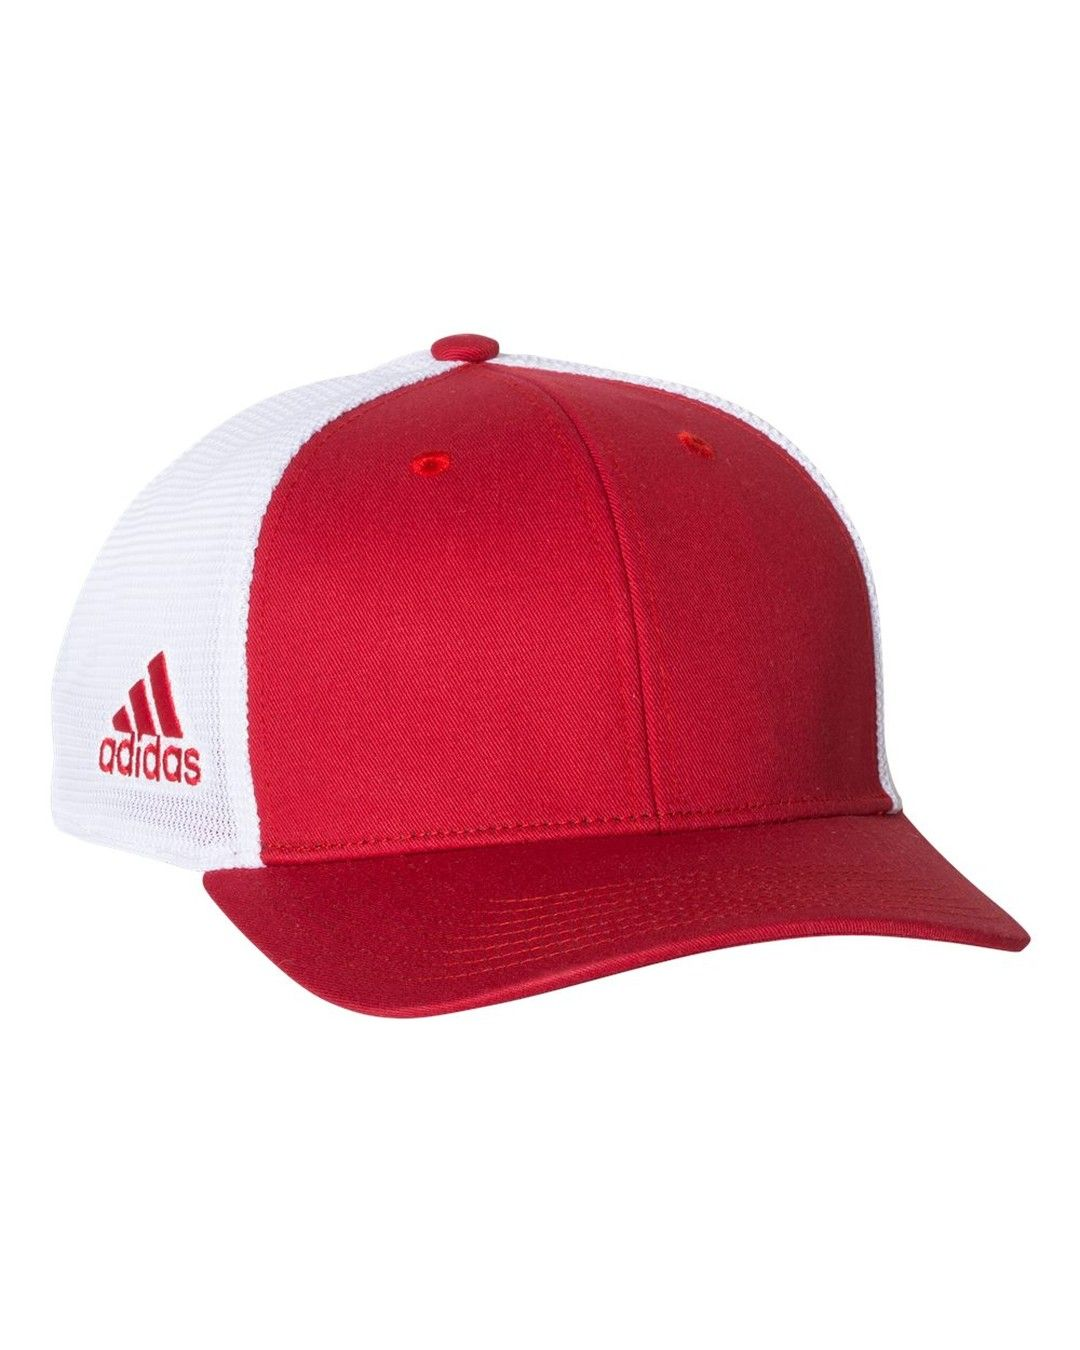 709f4d2df6c28  workshopcity posted to Instagram  Adidas Power Red  White Mesh Colorblock  Cap. . . . . . . .  hat  snapback  cap  hats  caps  hats  custom  customize  ...